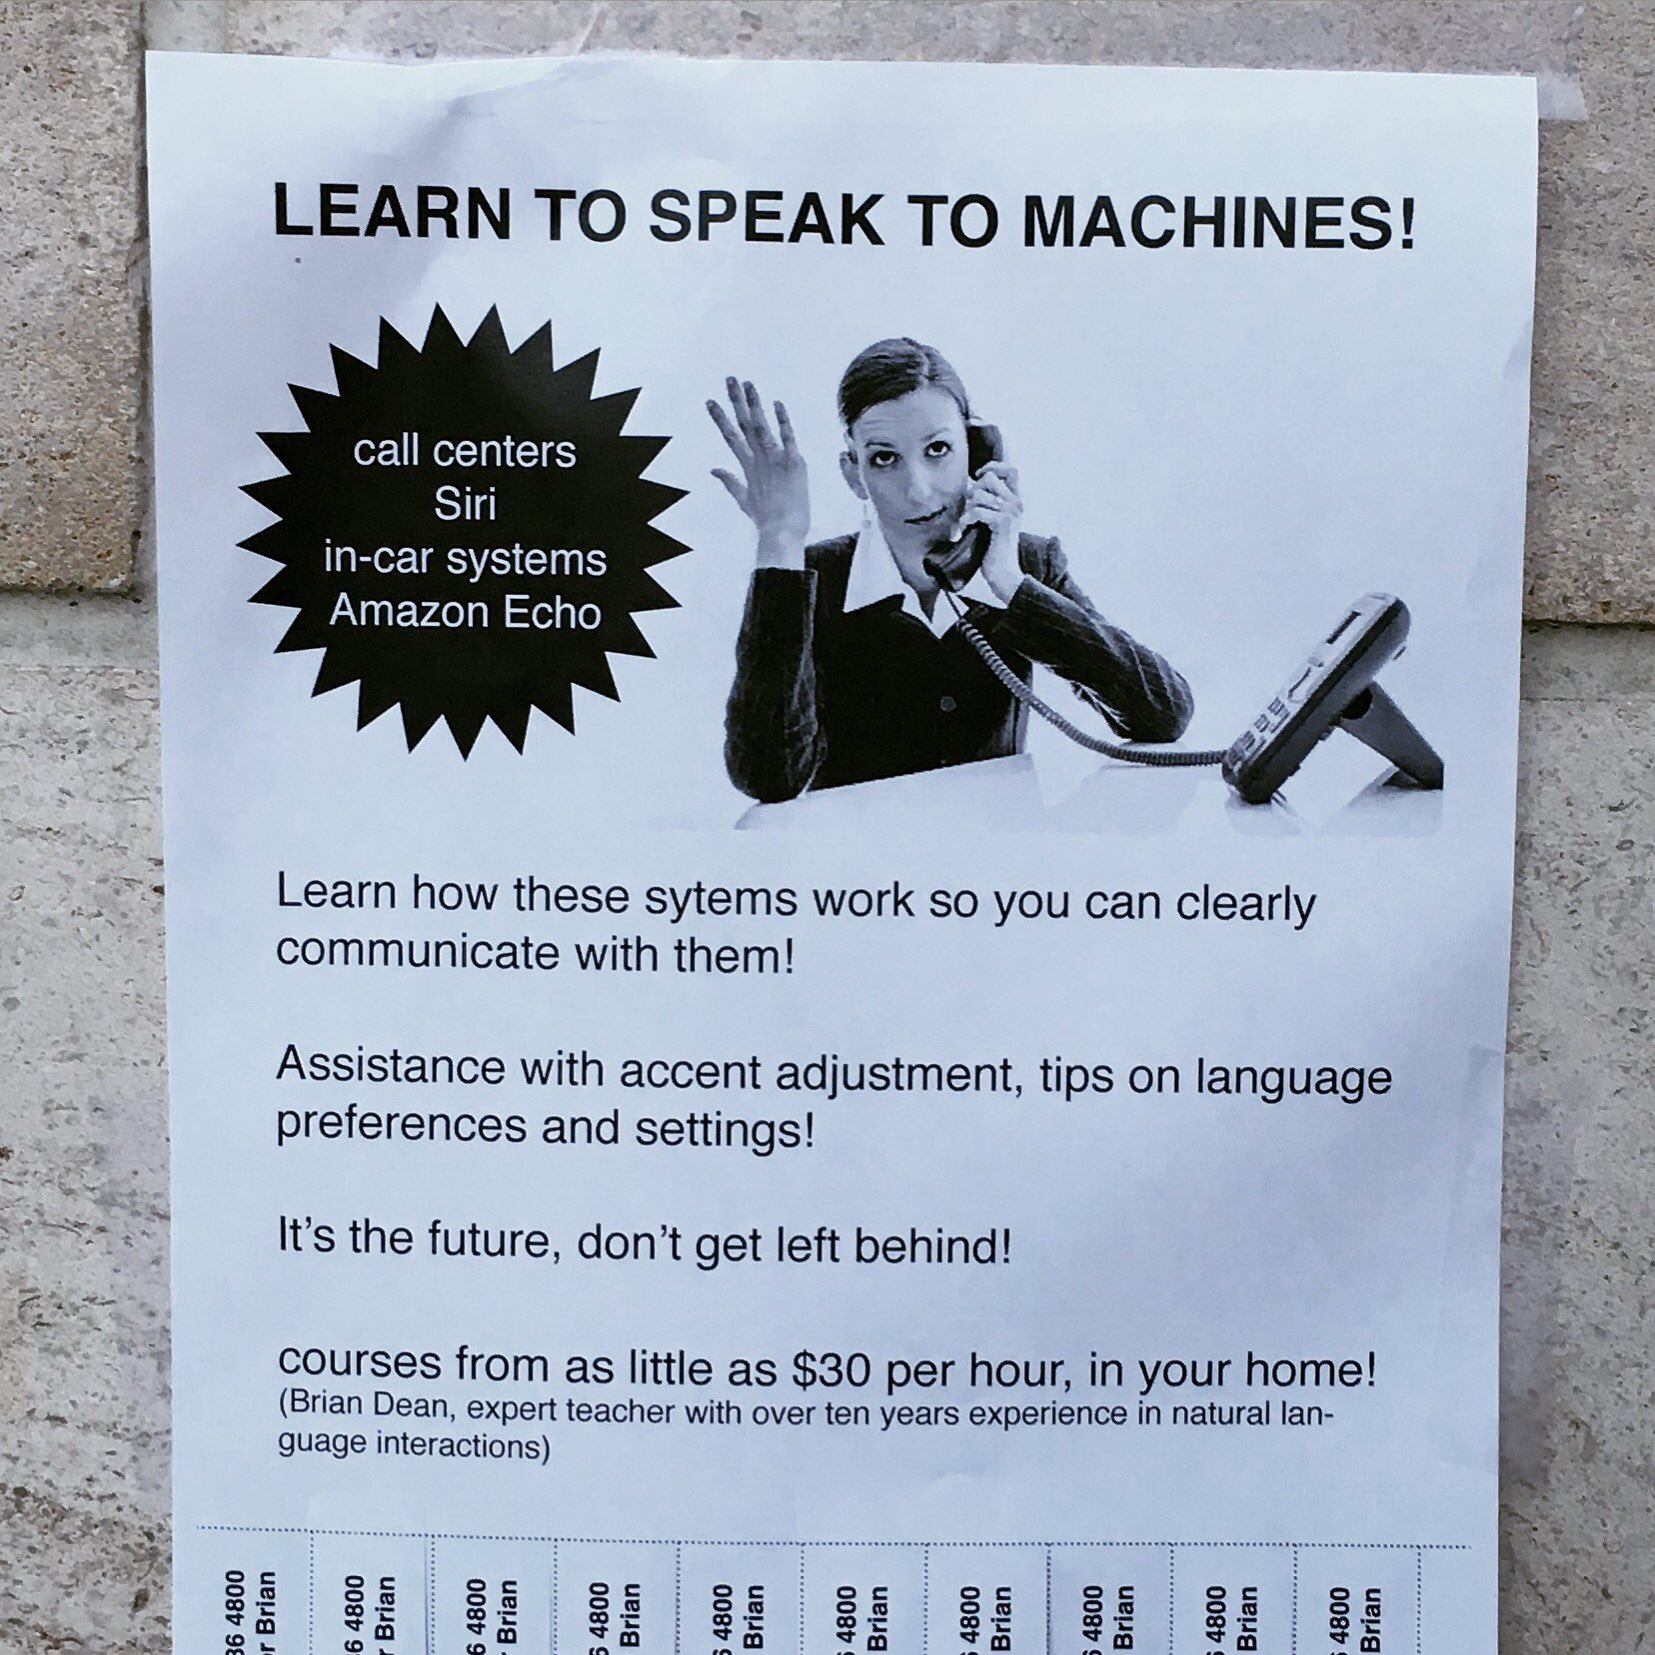 Bots! LEARN TO SPEAK TO MACHINES!  call centers  Siri  in-car systems  Amazon Echo  Learn how these sytems work so you can clearly communicate with them!  Assistance with accent adjustment, tips on language  preferences and settings!  It's the future, don't get left behind!  courses from as little as $30 per hour, in your home!  (Brian Dean, expert teacher with over ten years experience in natural language interactions)